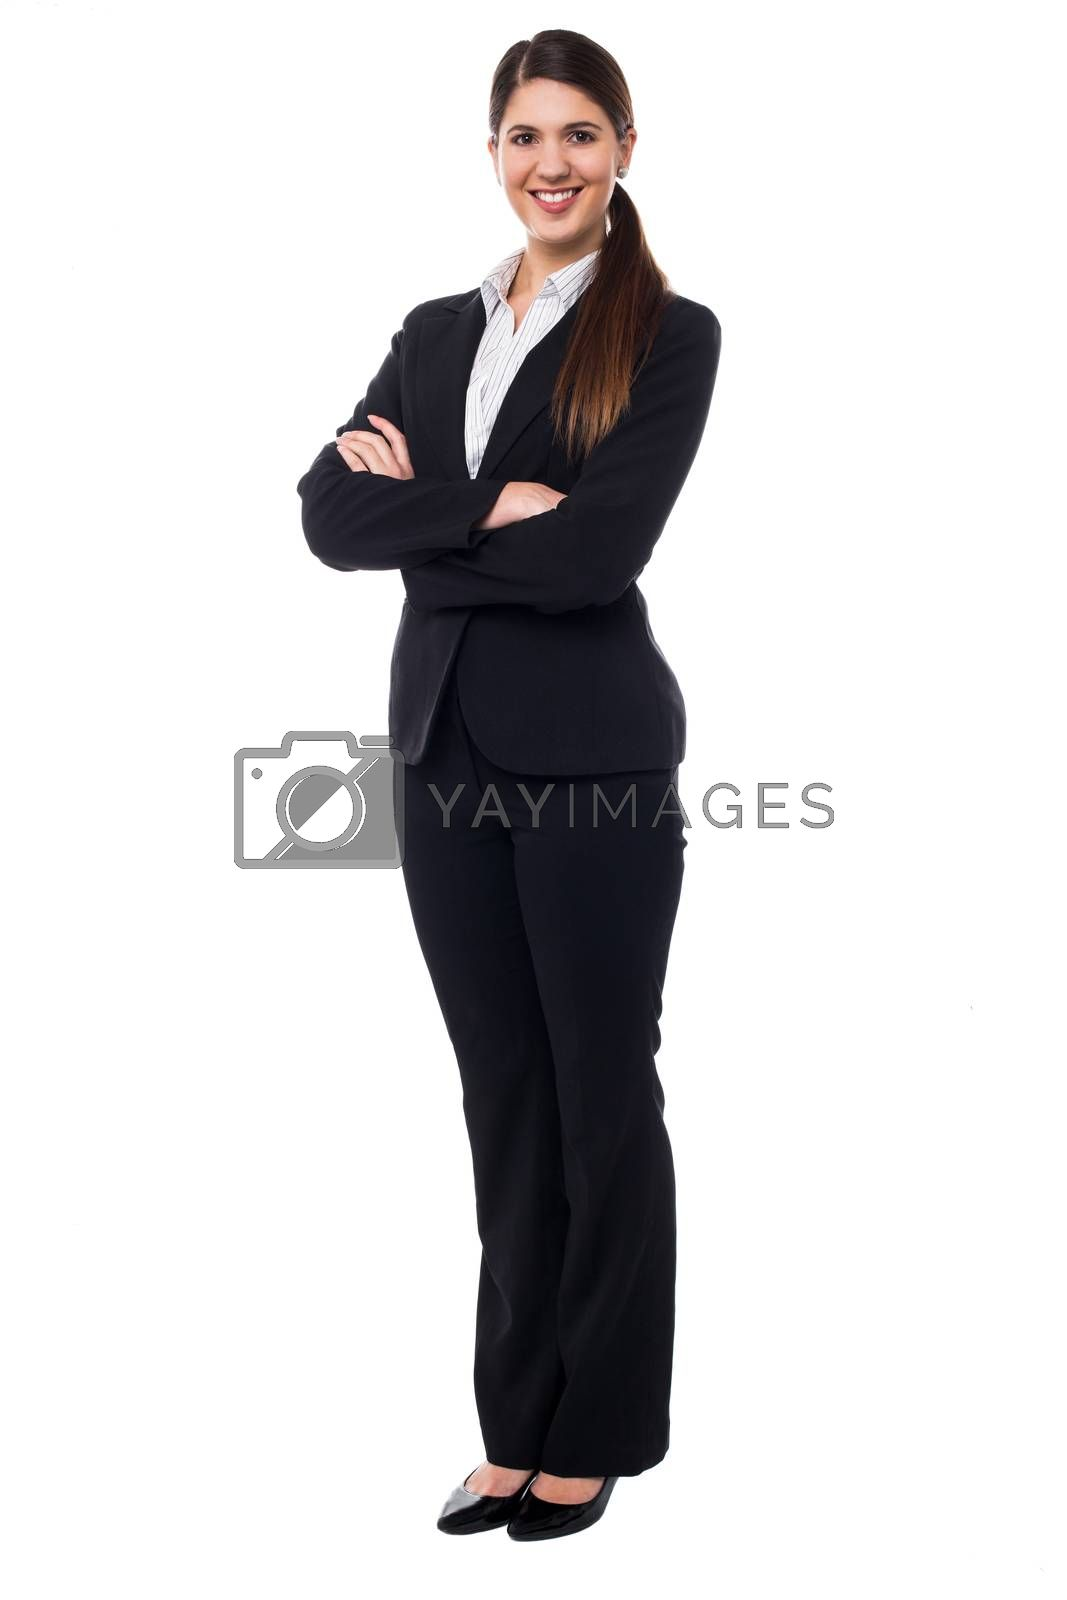 Royalty free image of Young confident female business executive by stockyimages